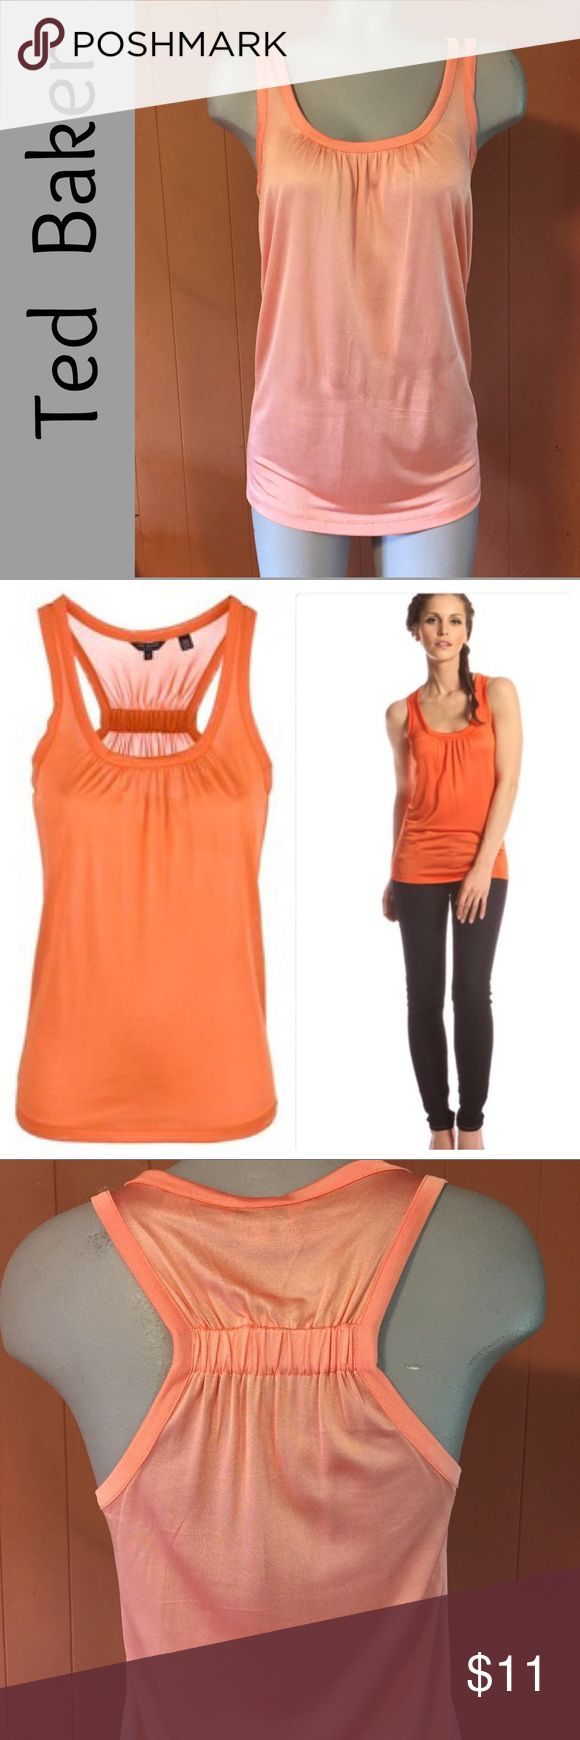 TED BAKER London peach coral racer back silky tank Luxe TED BAKER London Skylon Racerback tank with great details. Elastic across Racerback with delicate gathering allows the silky 100% viscose fabric to drape nicely. Color is a pale peach orange shade. Scoop neck also features slight gathering, so the tank glides over you. This is Ted Baker's size 2, which is equal to a small or US 6. In great condition. From Bloomingdales. High quality fabric & construction. Machine washable.  (#391) Ted…